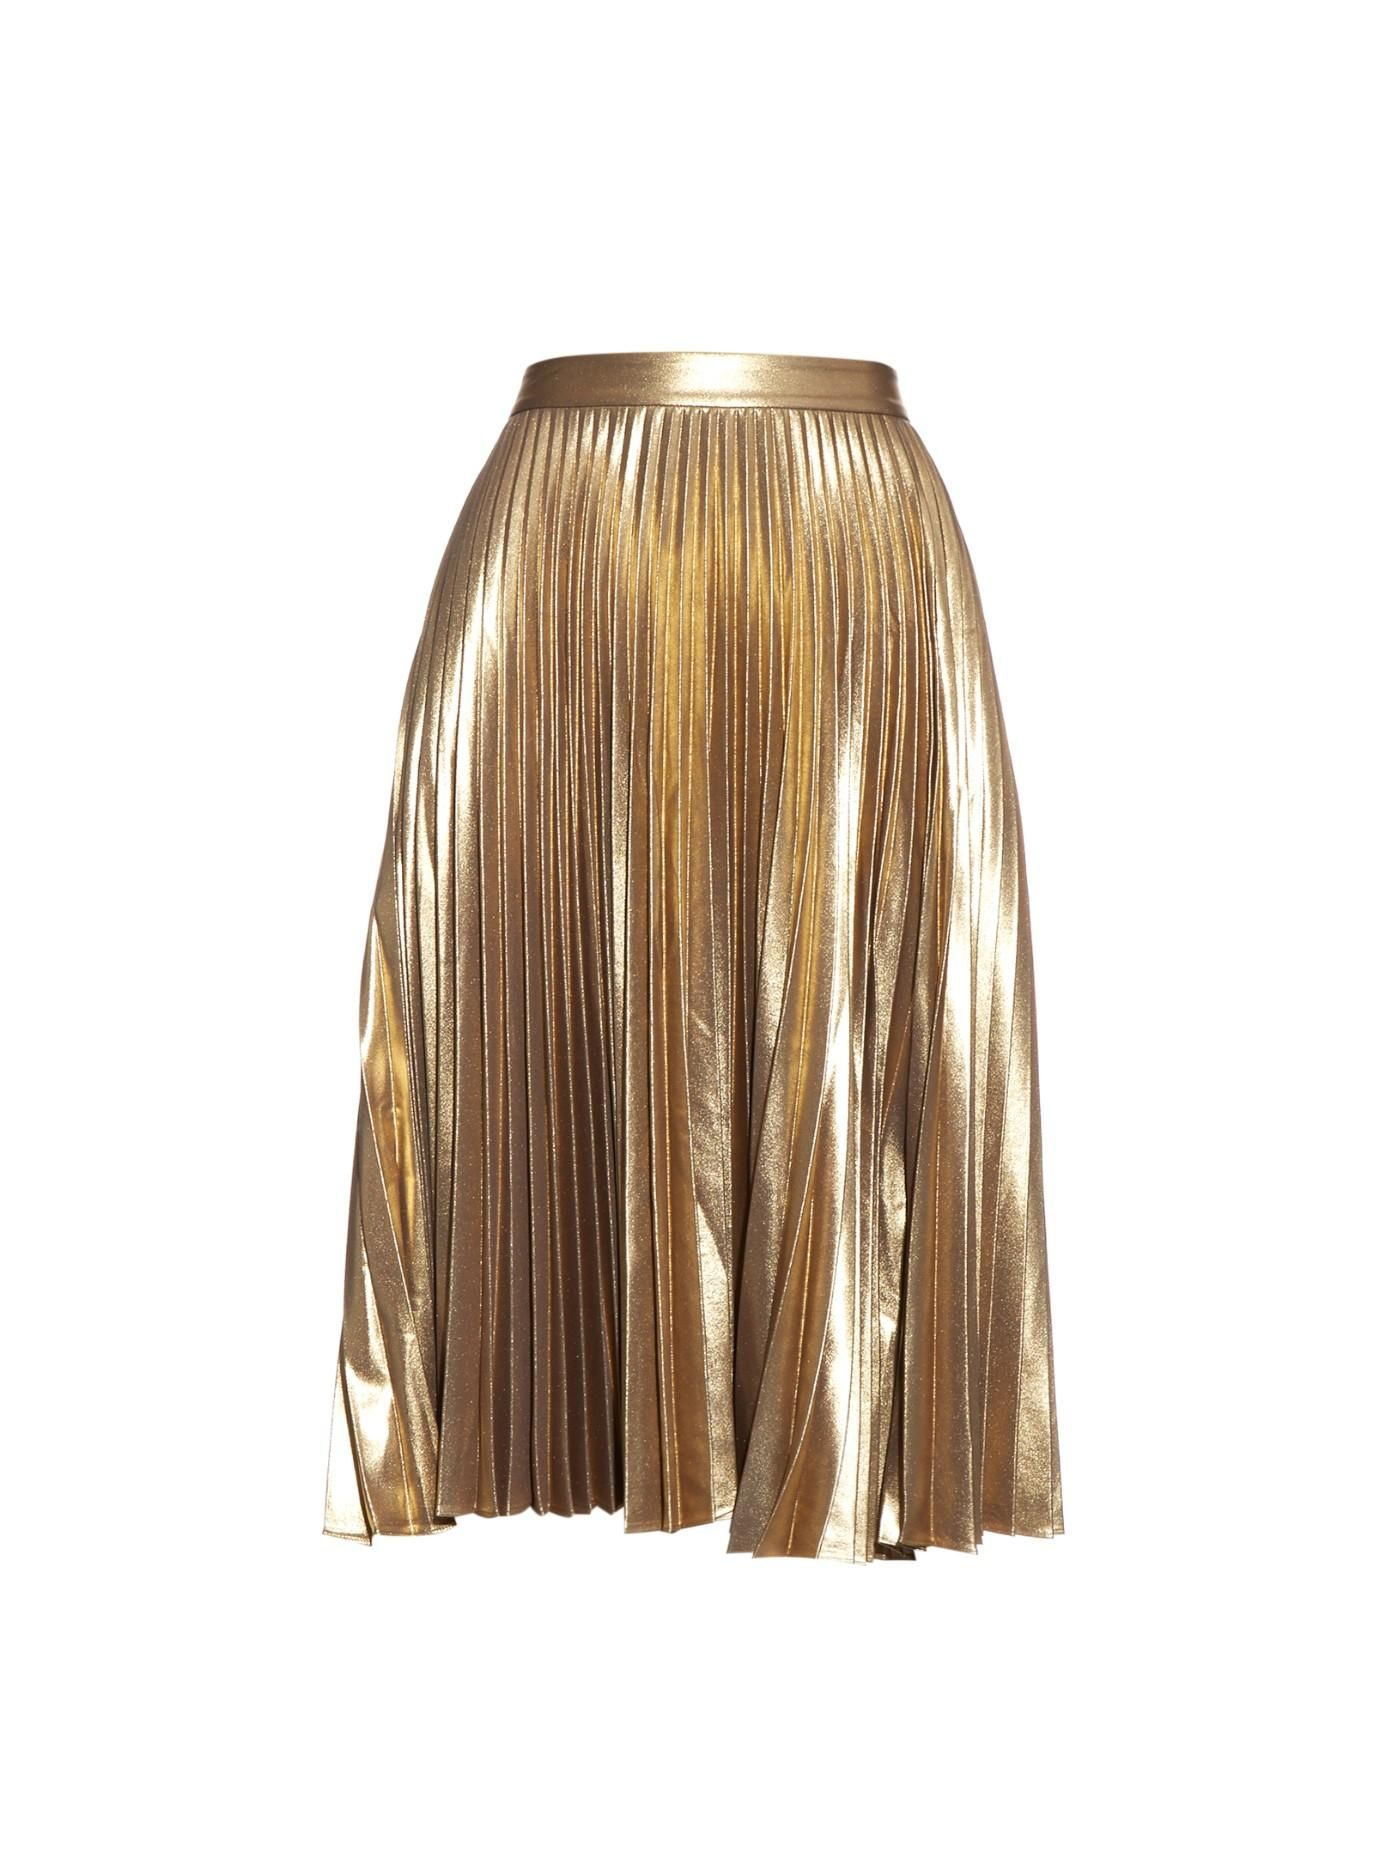 19c9401375 13 Gucci-Inspired Metallic Pleated Skirts to Shop Now | @stylecaster